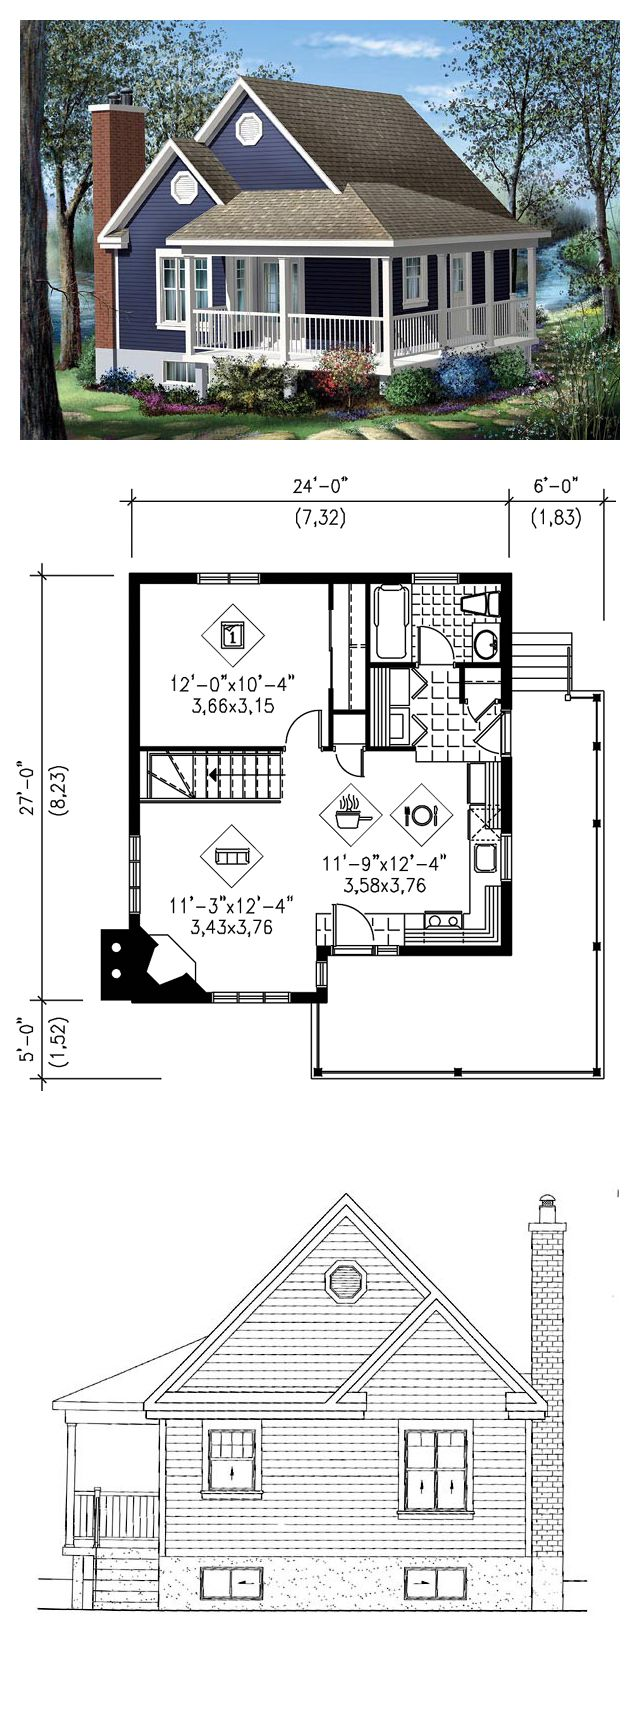 best 25 micro house plans ideas on pinterest micro house micro